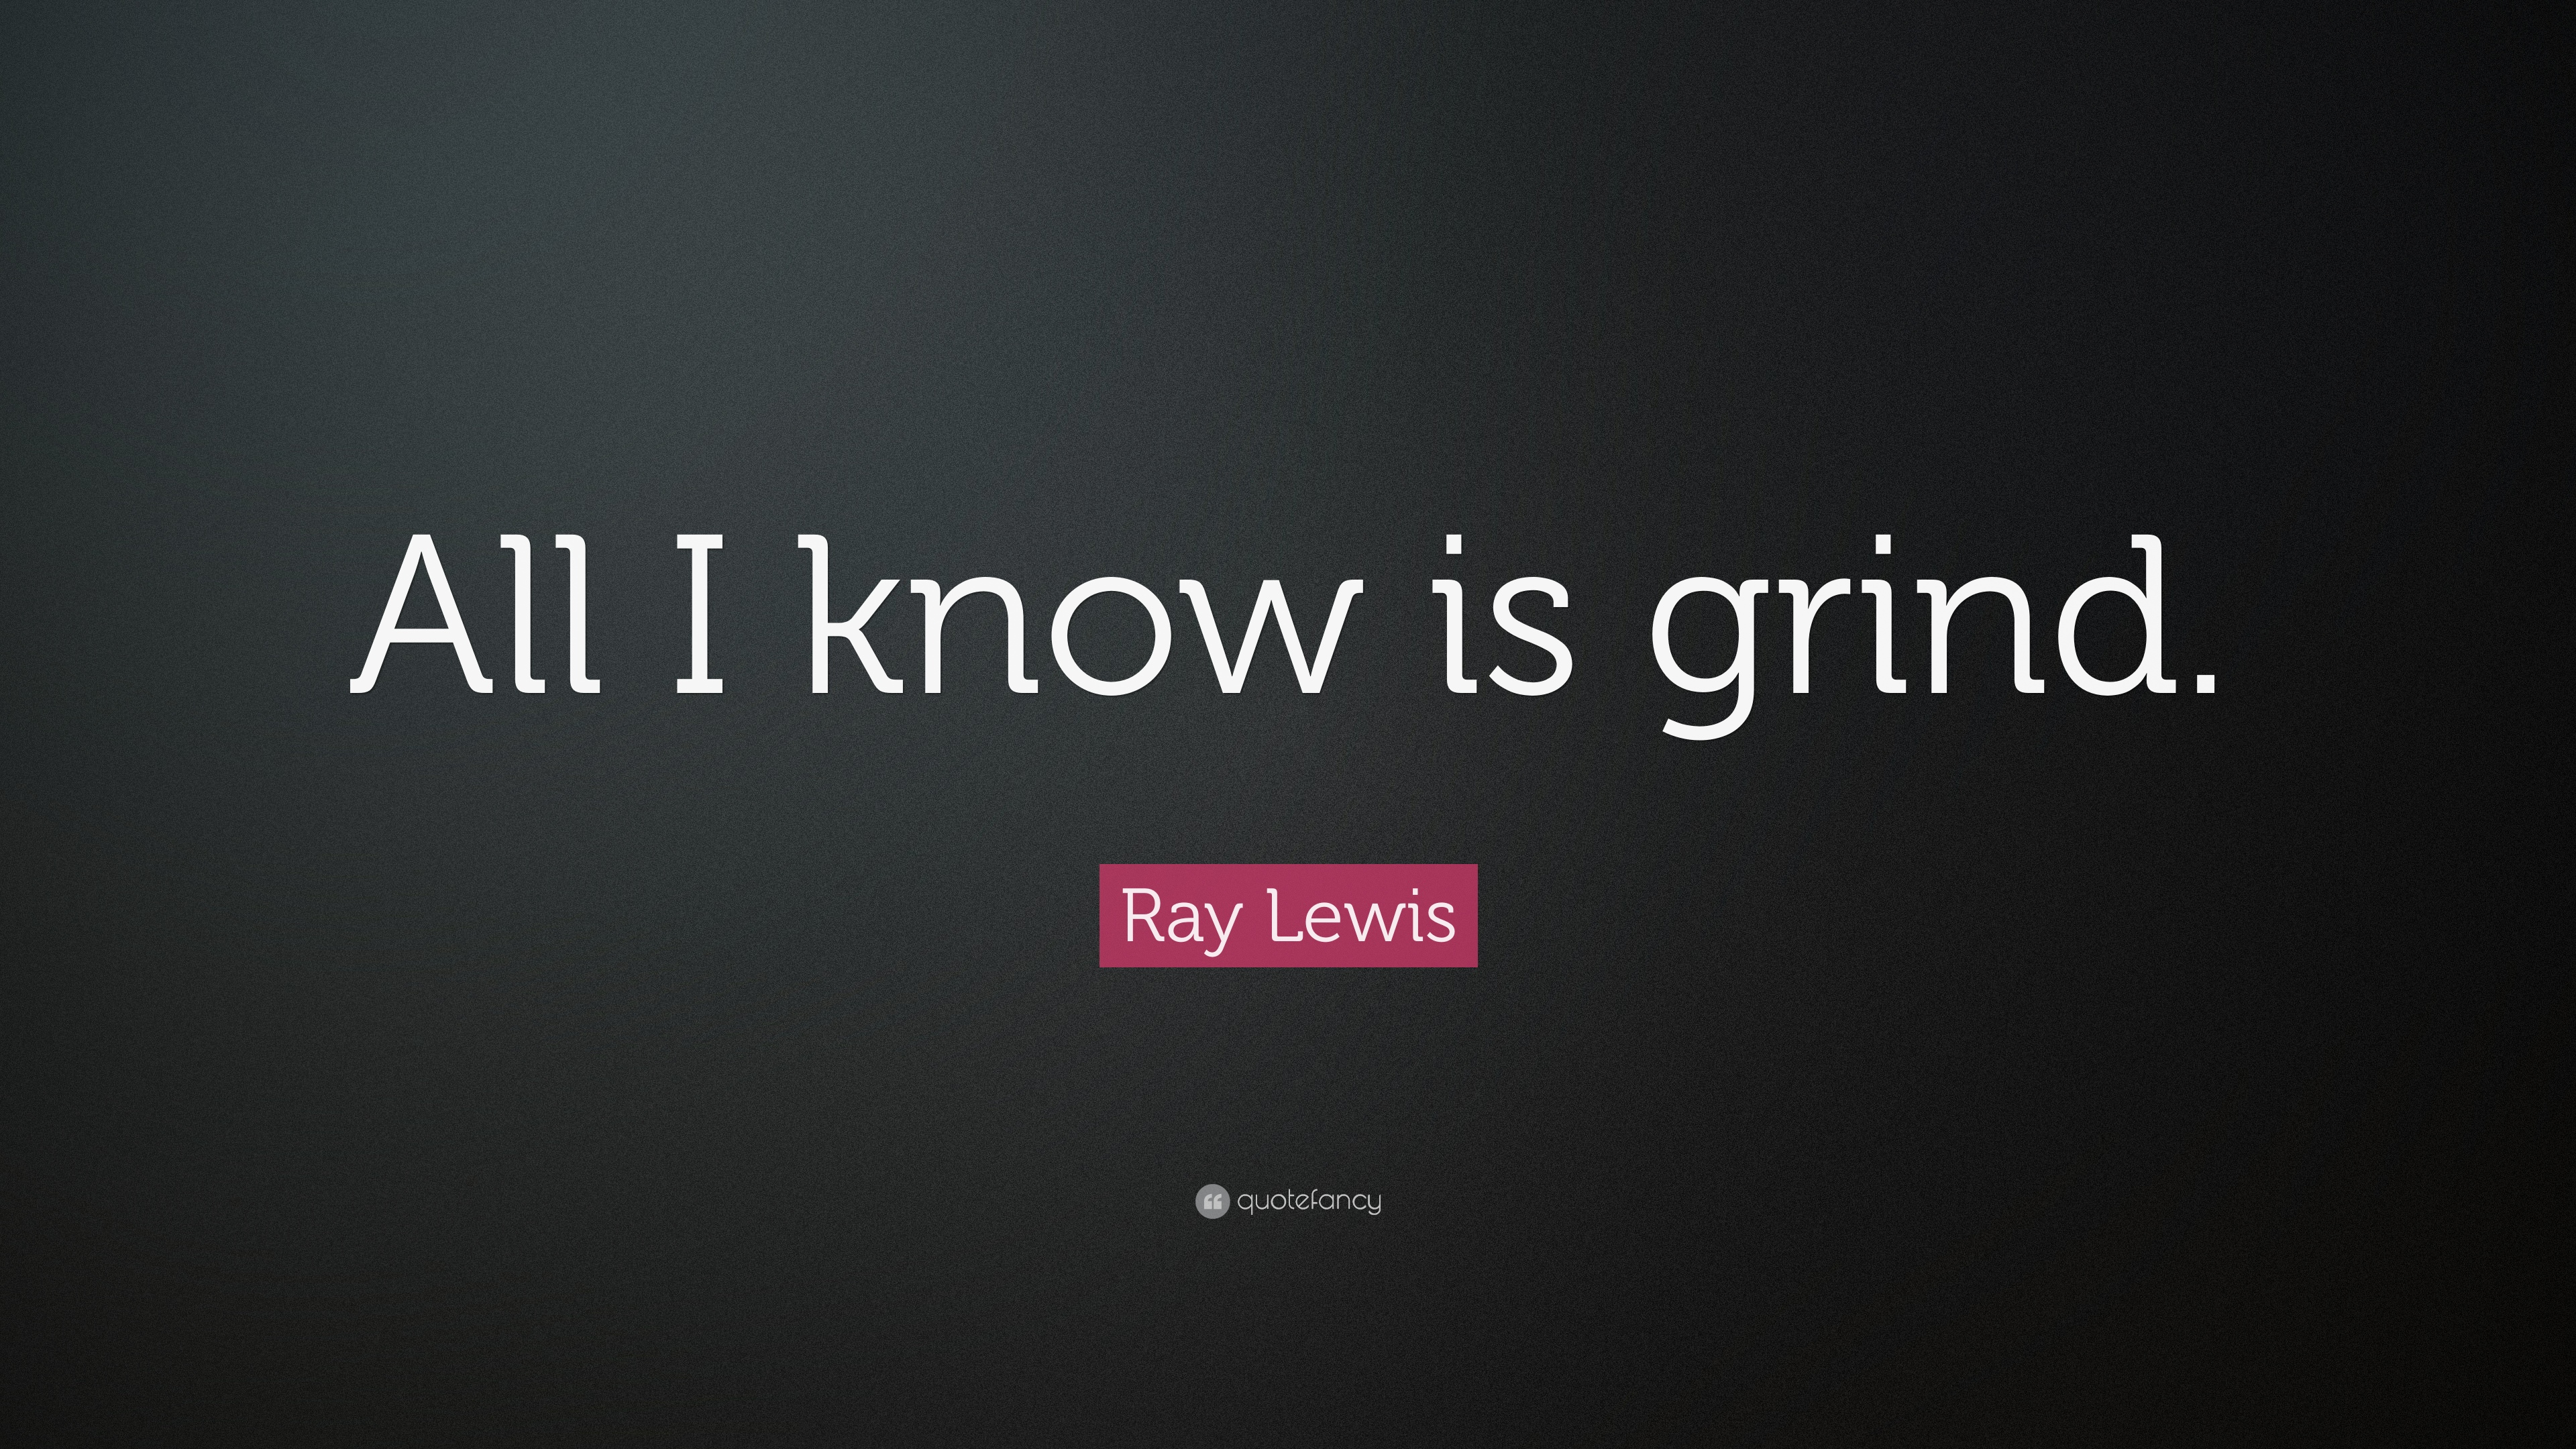 Ray Lewis Quote     All I know is grind      4 wallpapers    Ray Lewis Greatness Quote